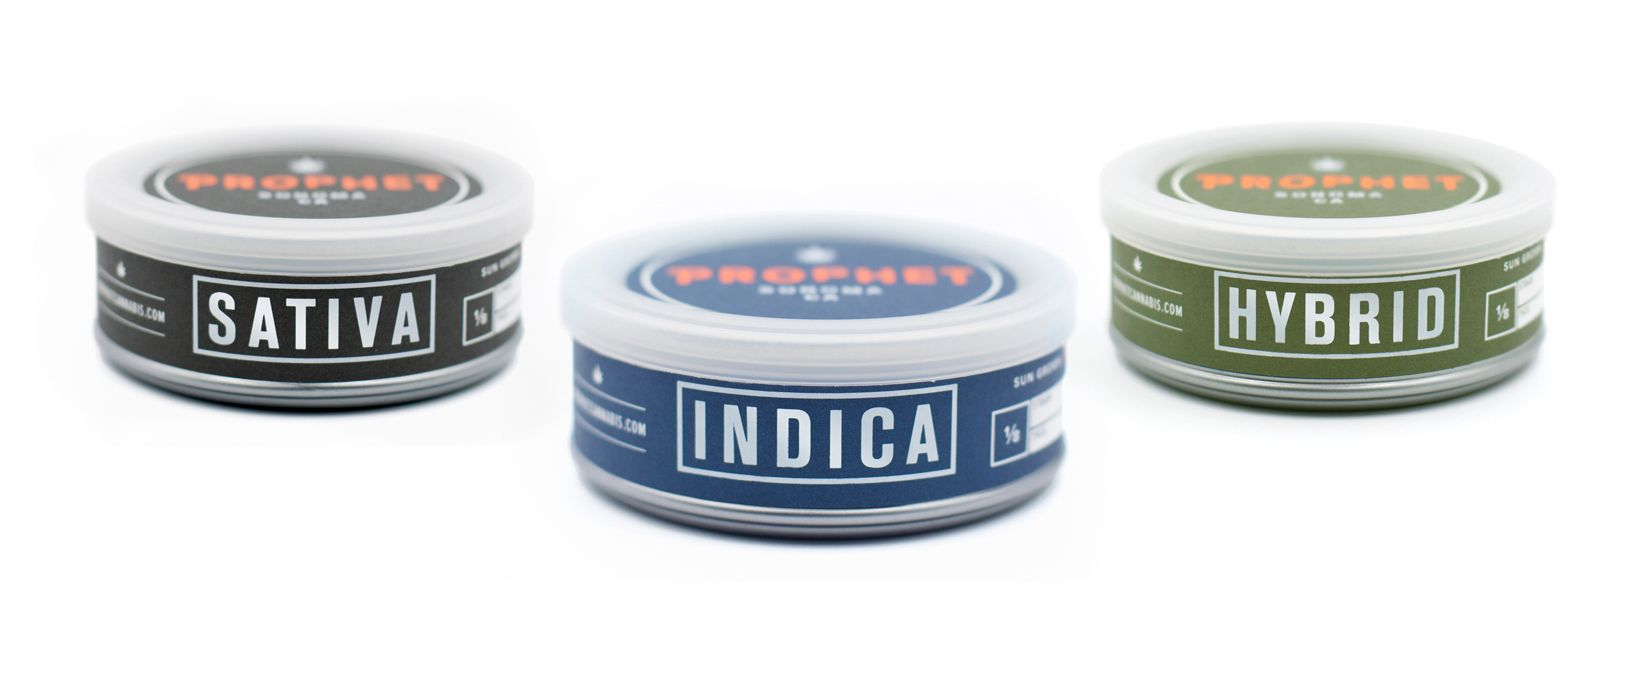 How Sophisticated Branding Aims to Make You Rethink Cannabis - 99U